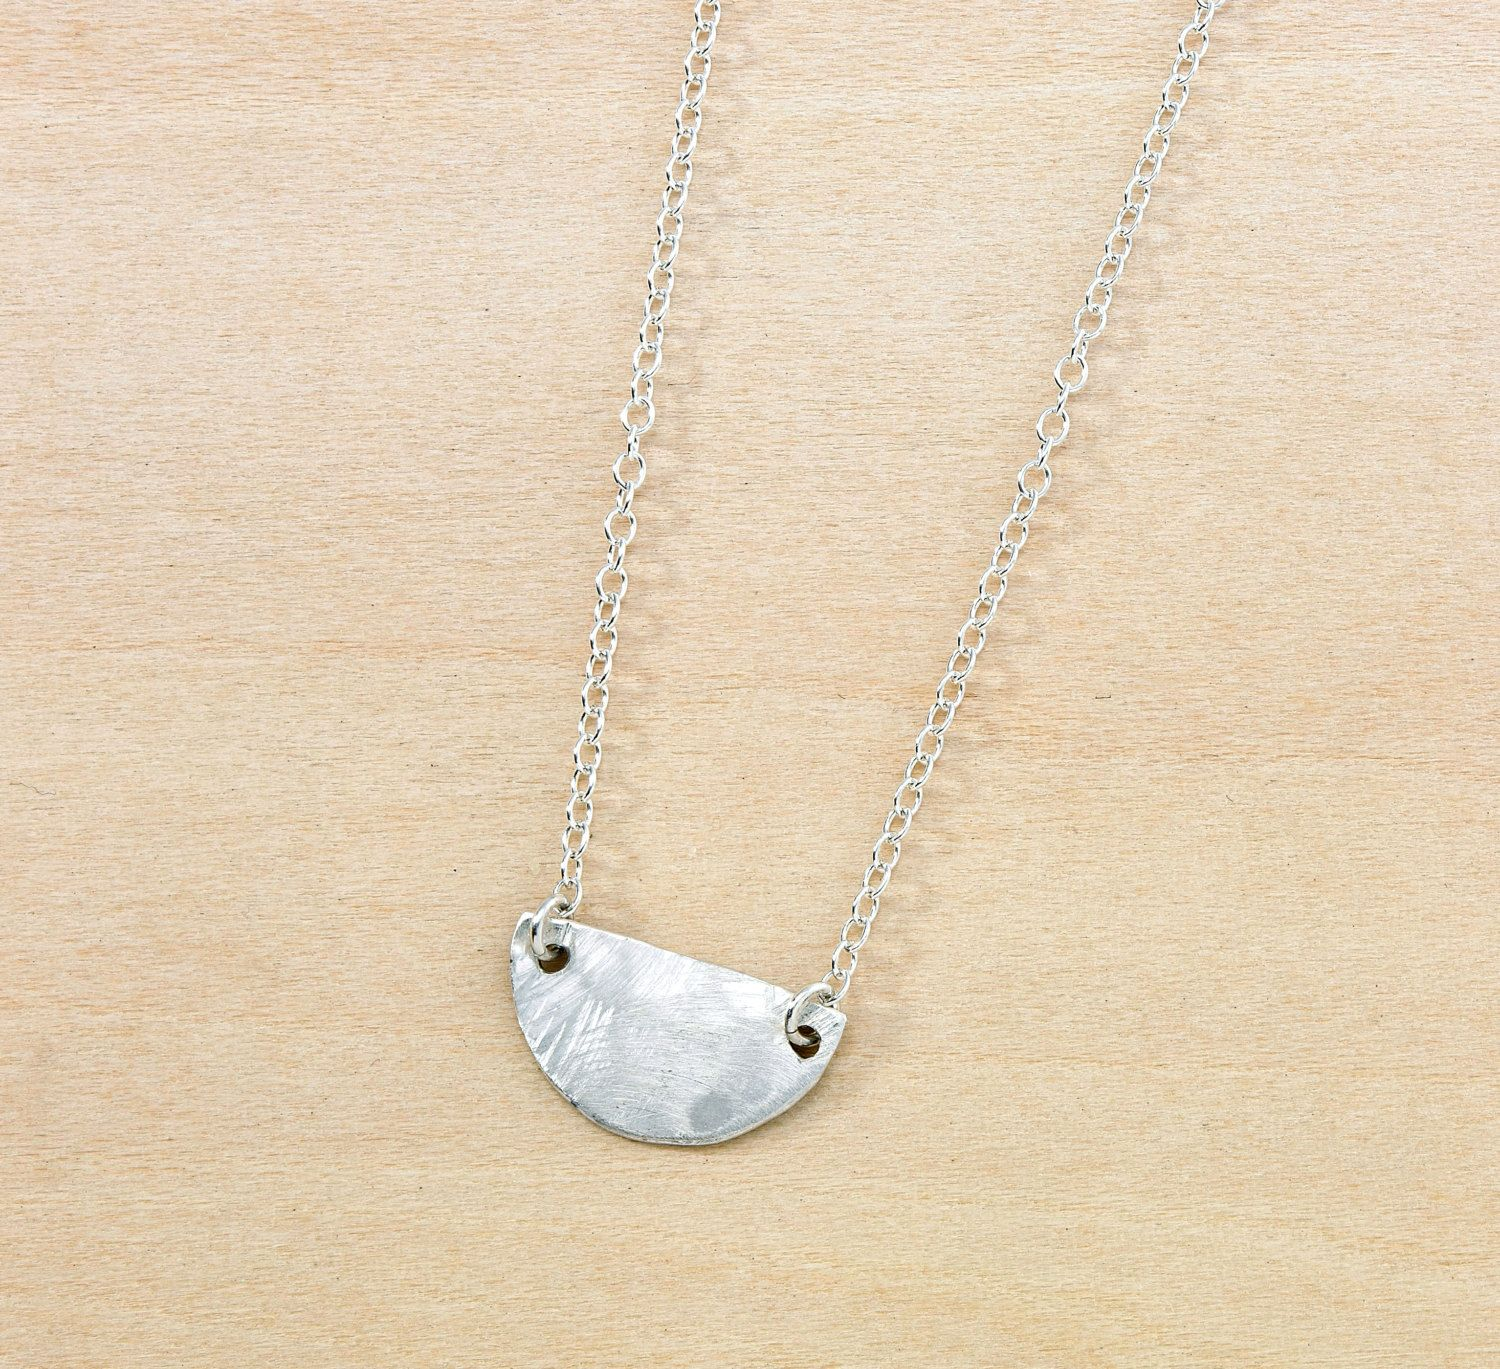 Half circle hammered pendant sterling silver tiny necklace half circle hammered pendant sterling silver tiny necklace lifes journey milestone meaning simple aloadofball Image collections